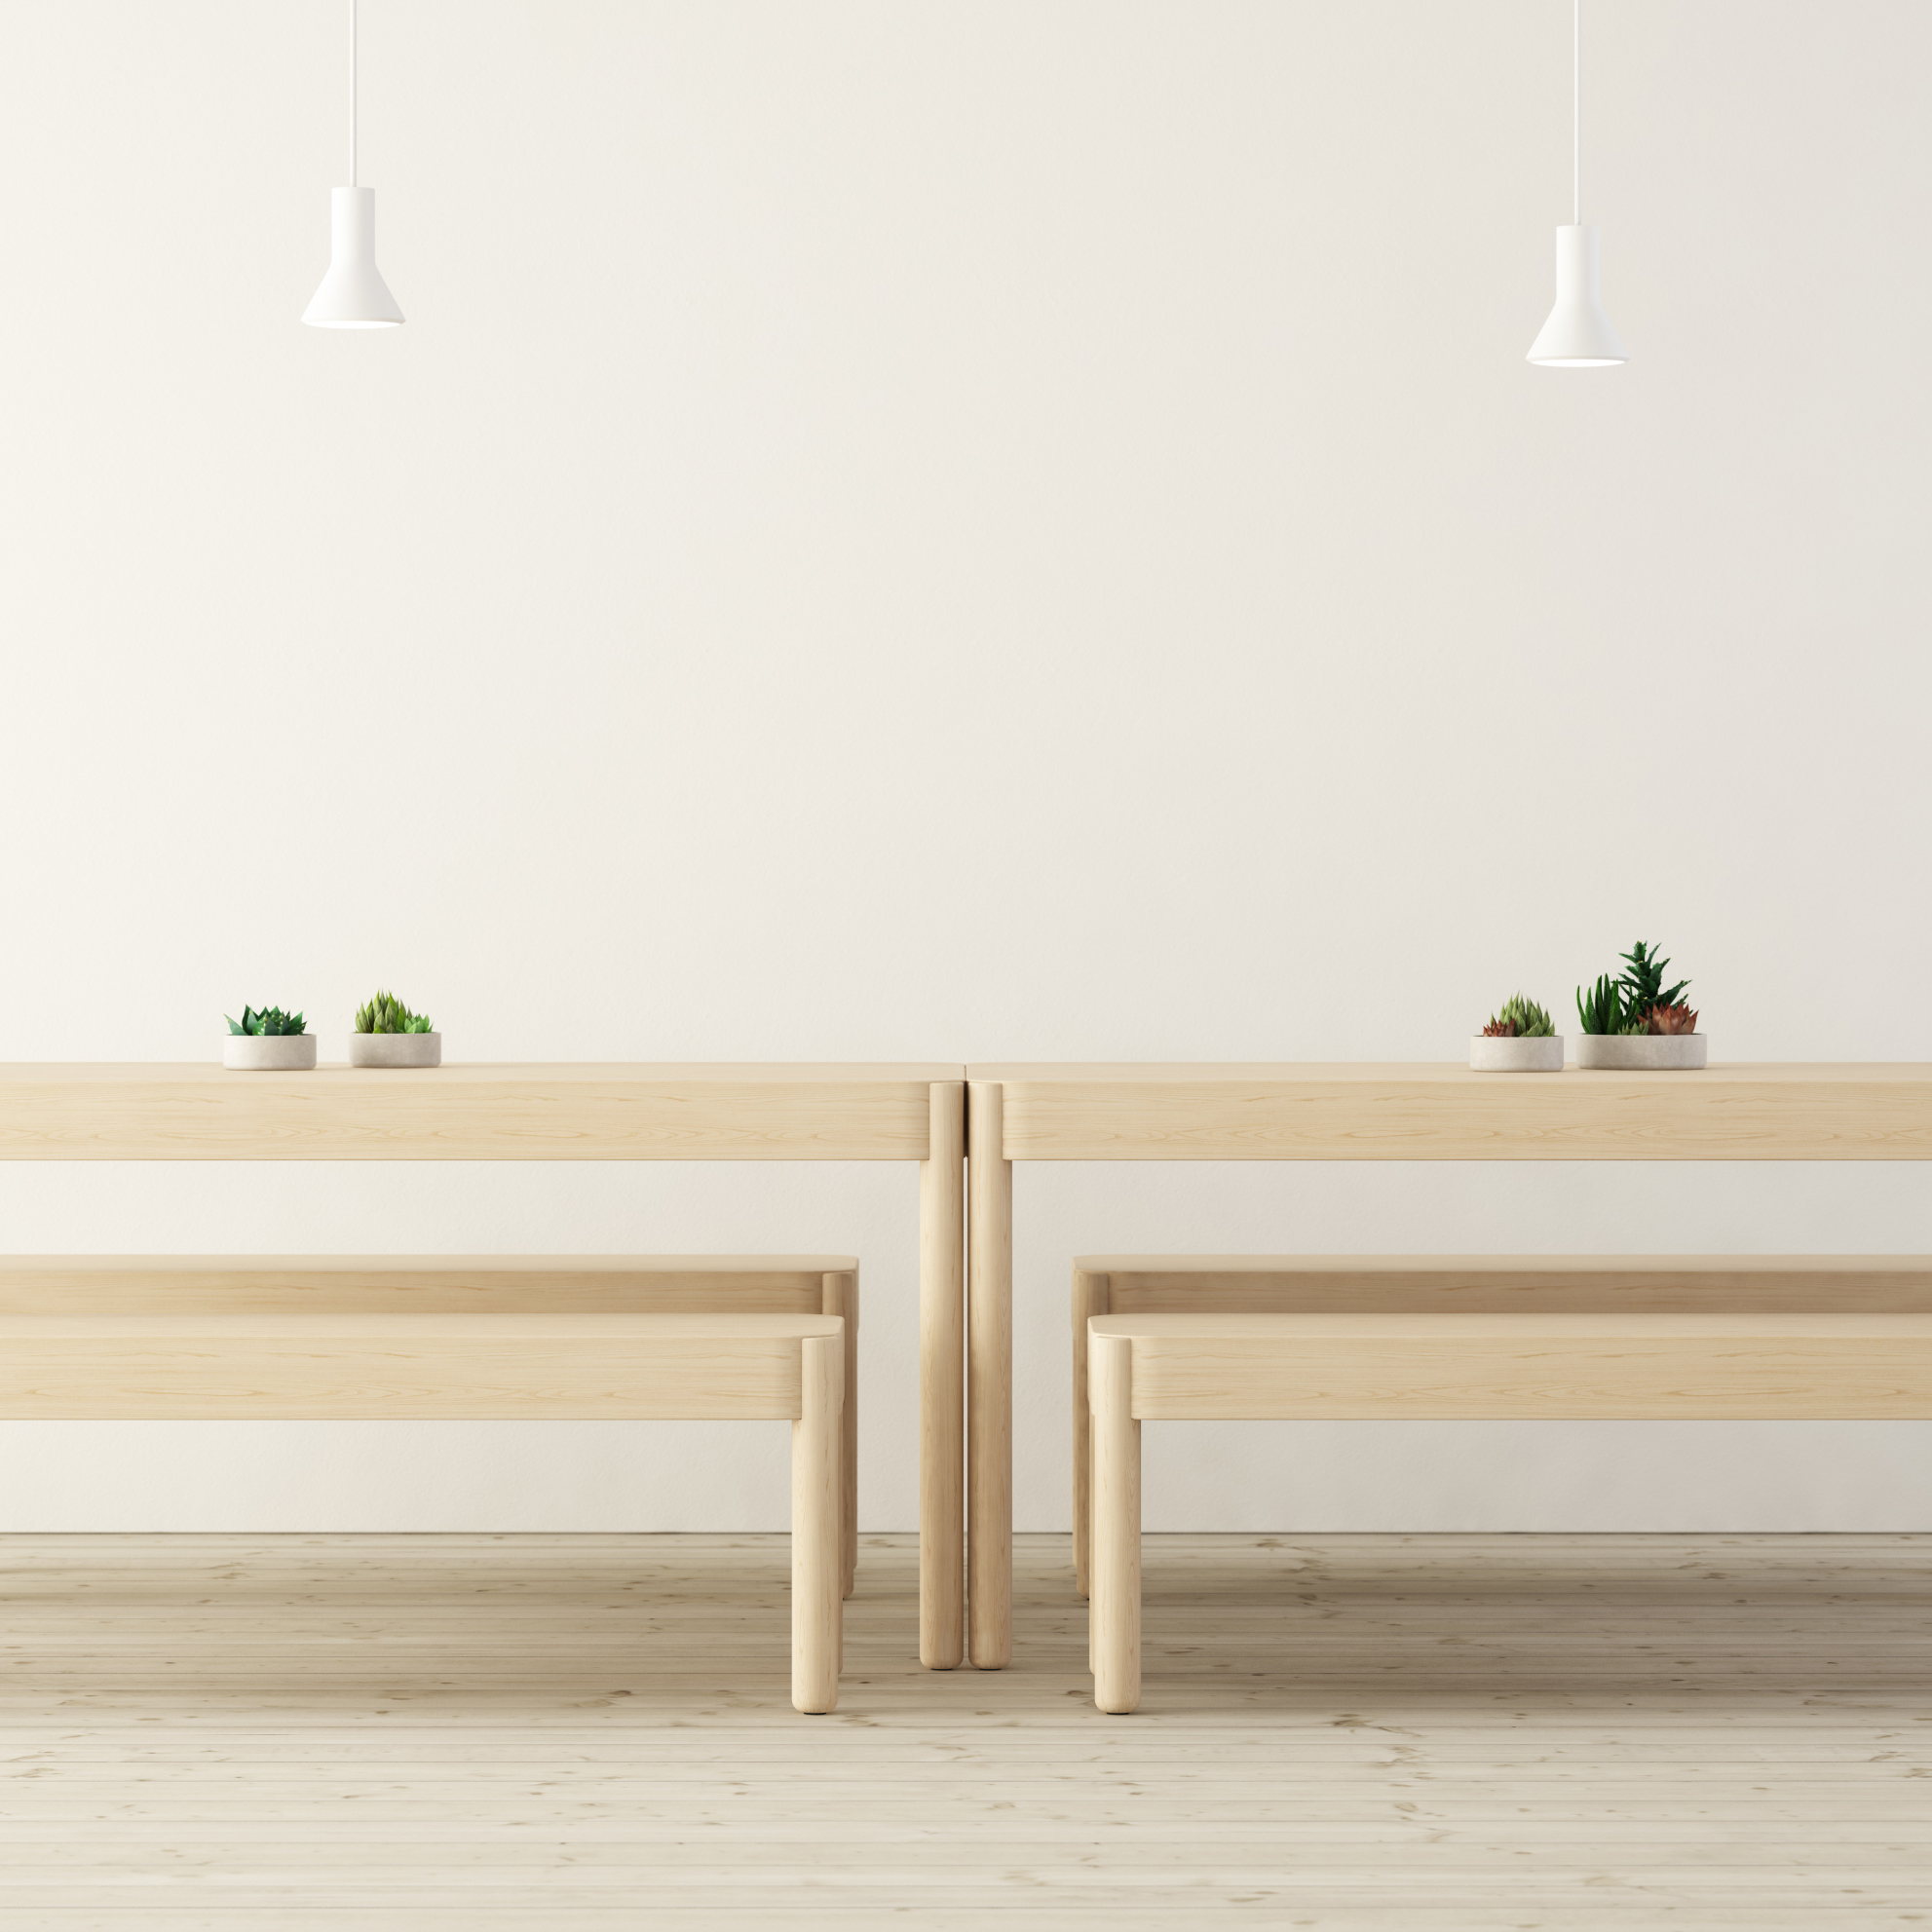 Wakufuru tables and benches by Glimakra of Sweden 2017, design Johan Kauppi